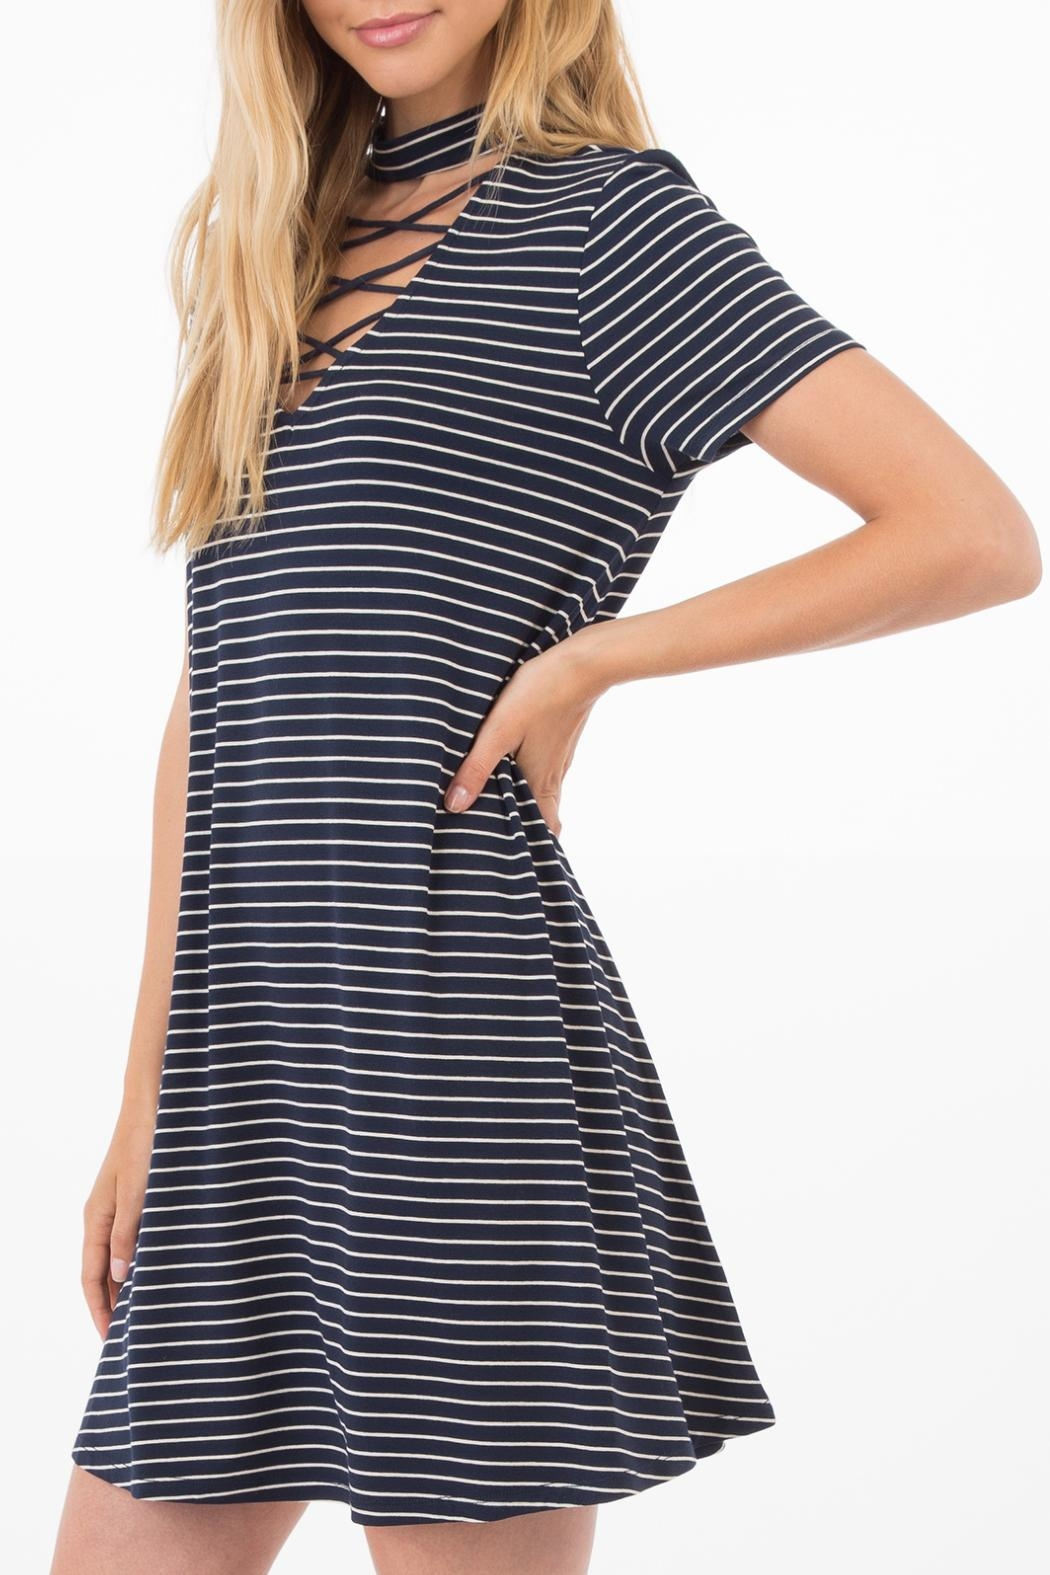 Others Follow  Striped Choker Dress - Front Full Image